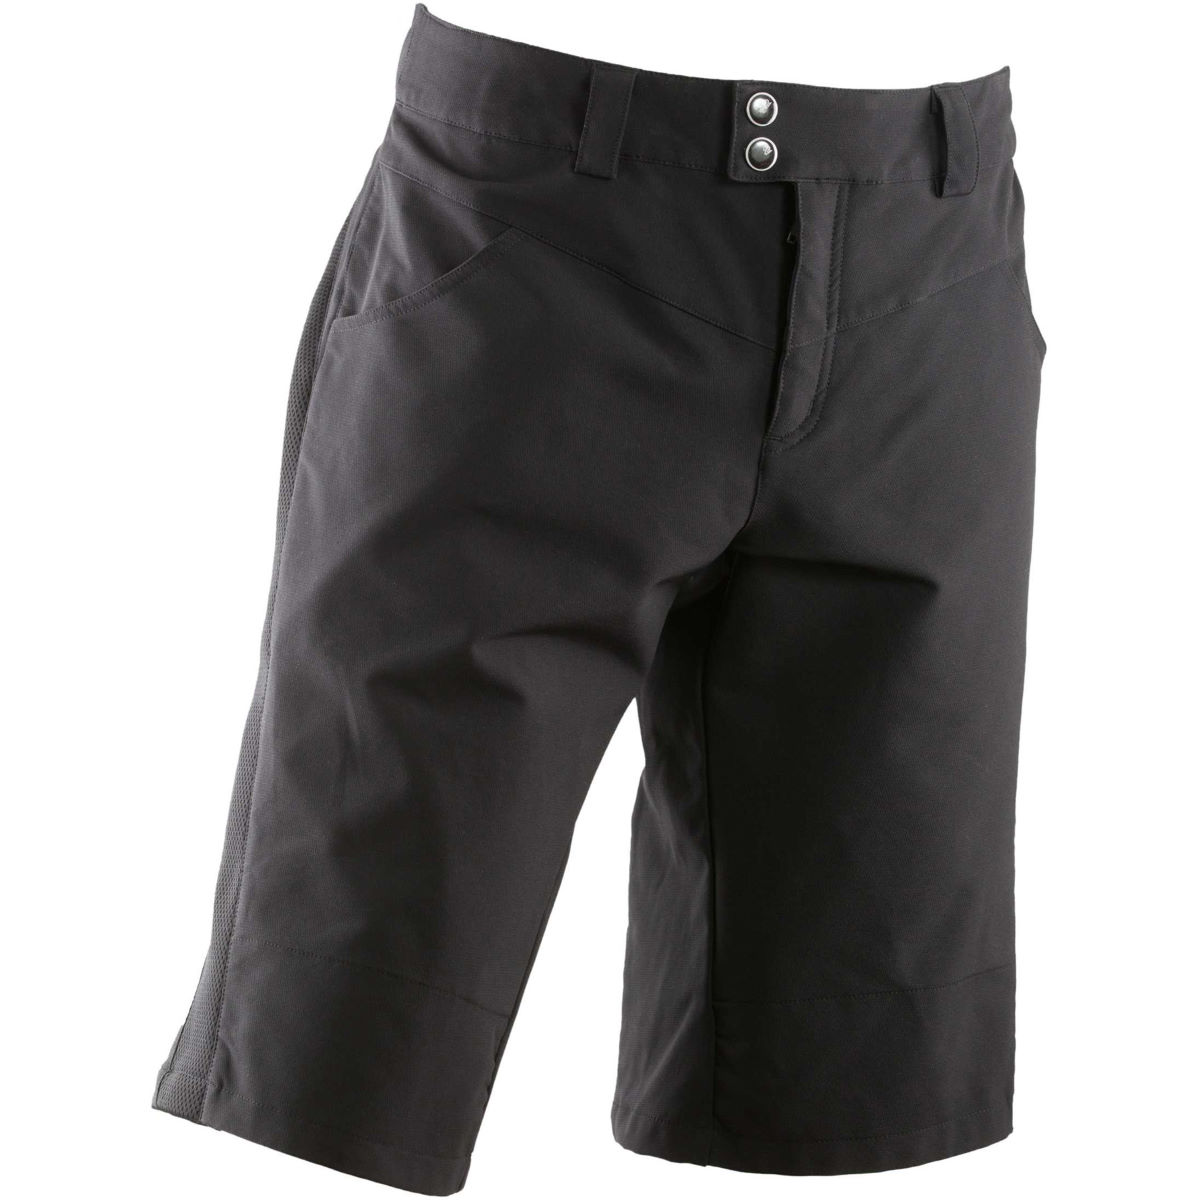 Short Race Face Indy (2015) - XL Noir Shorts VTT